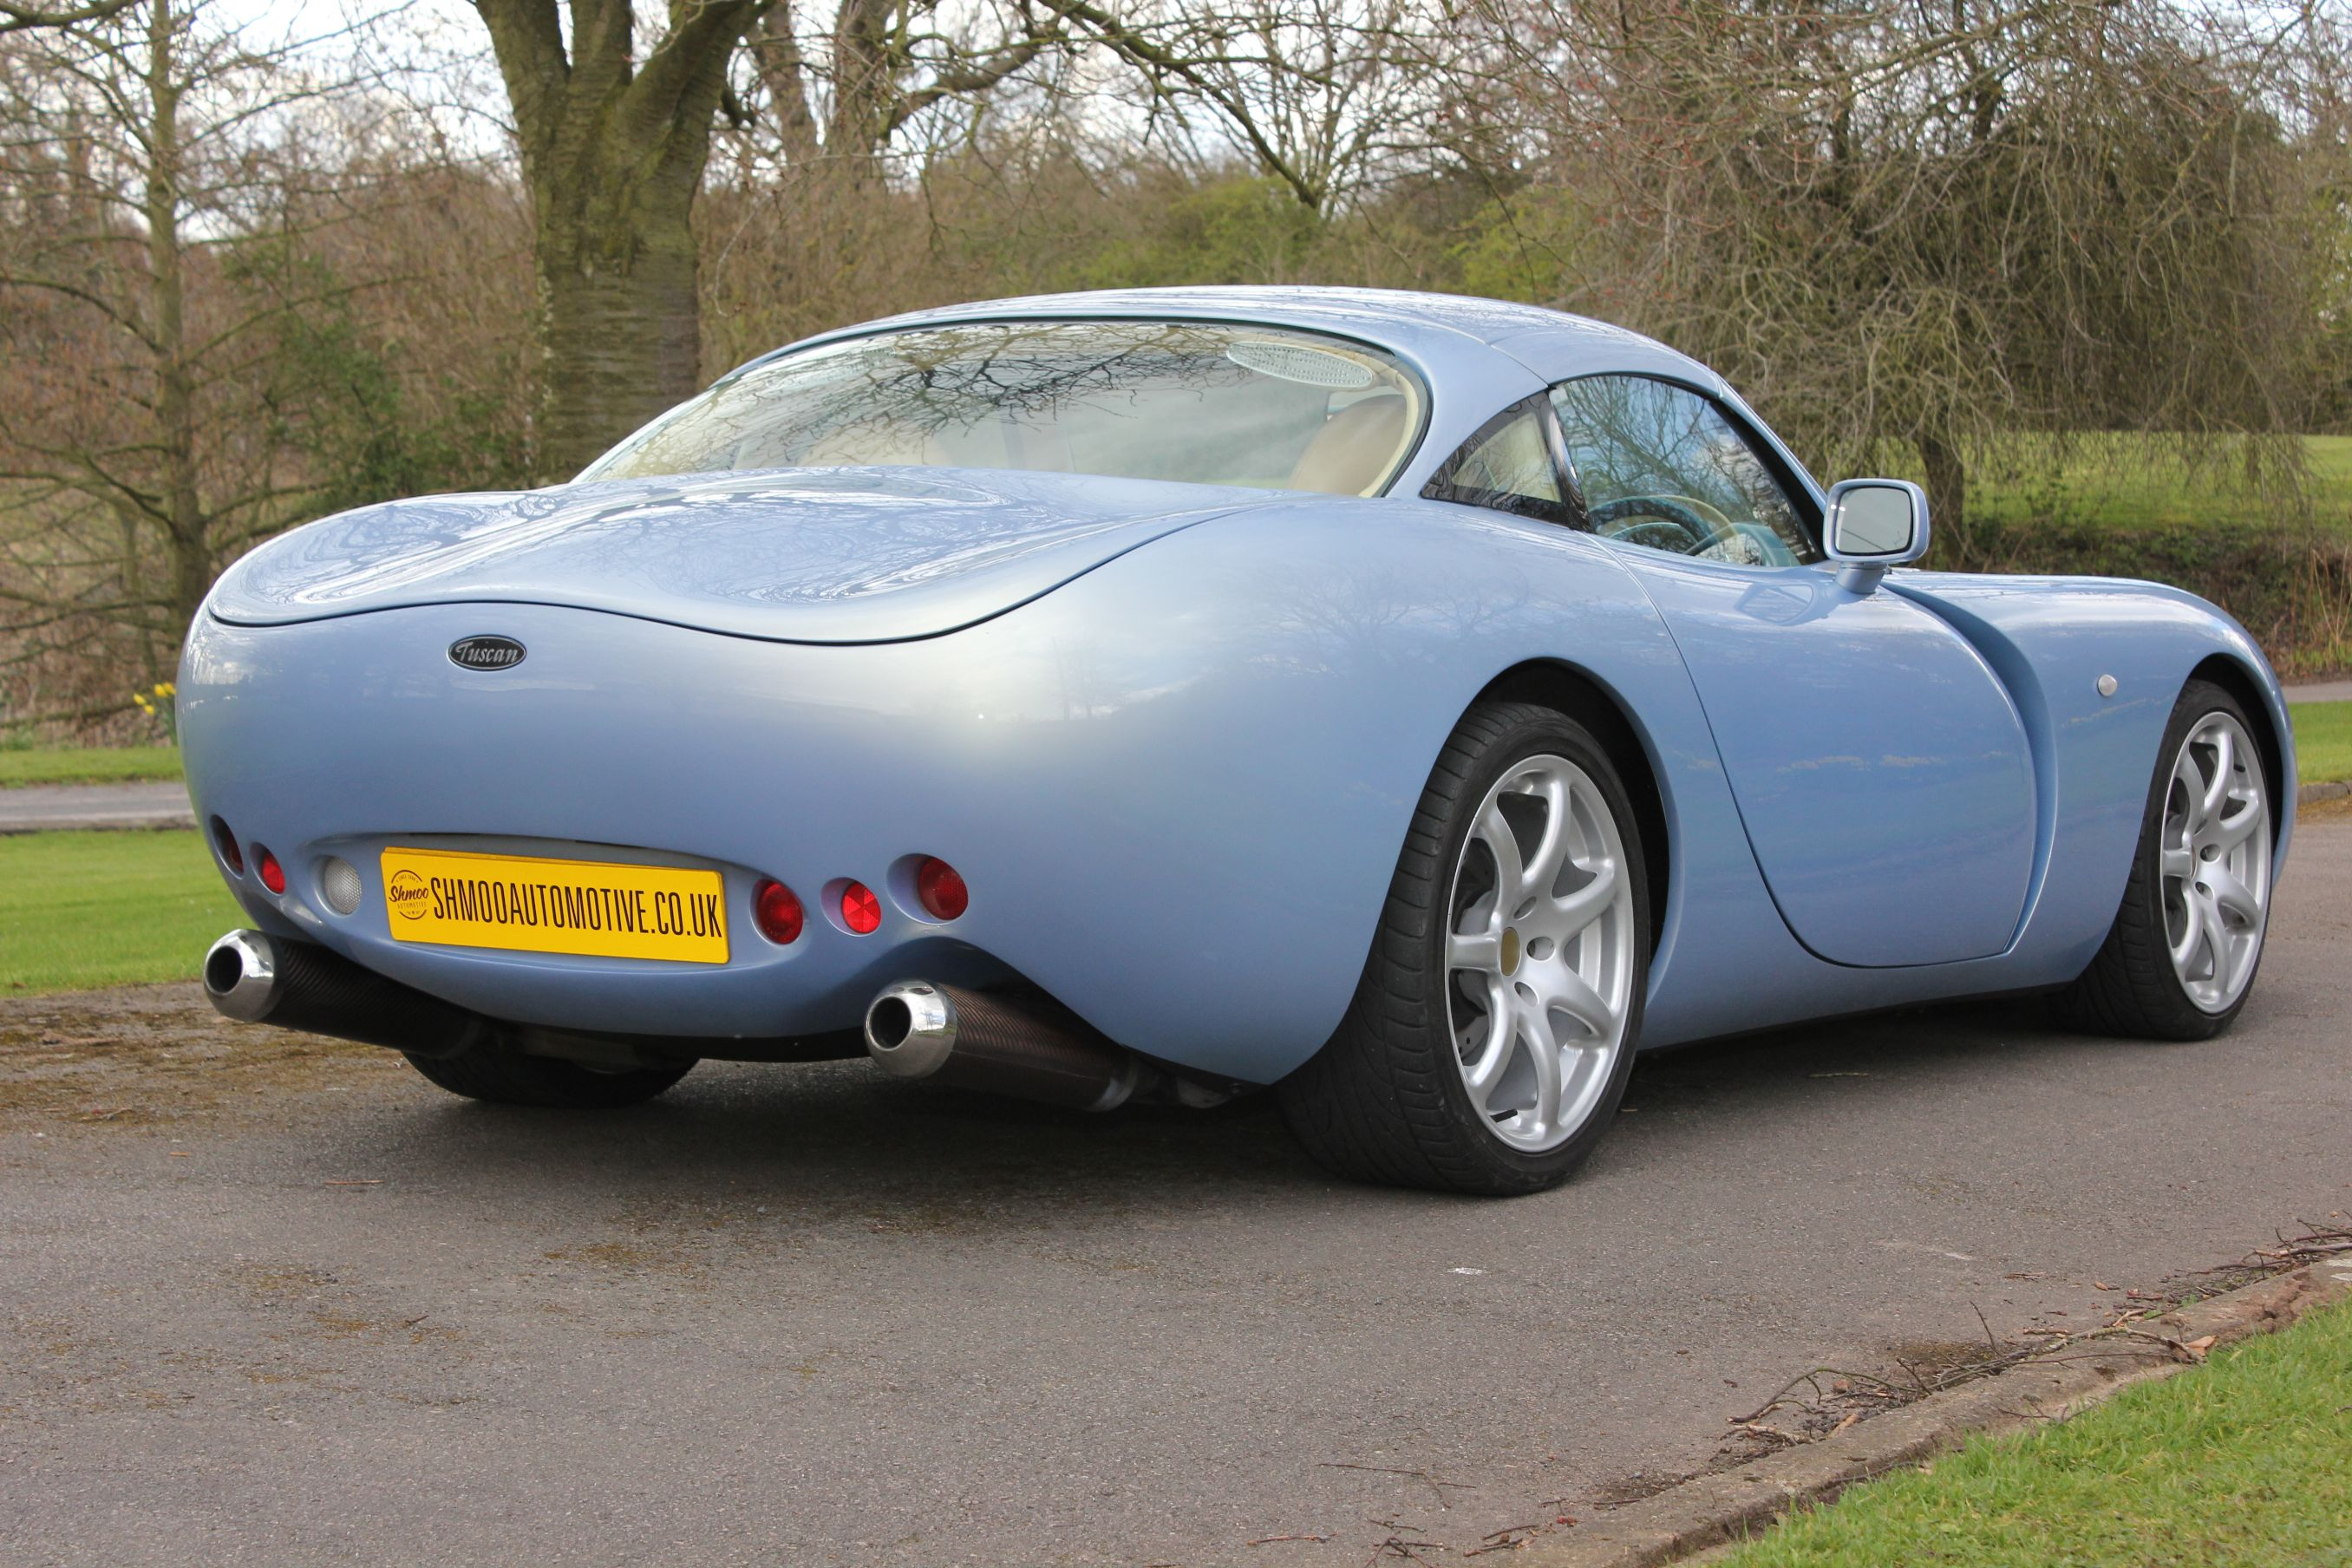 Tvr tuscan photo - 8